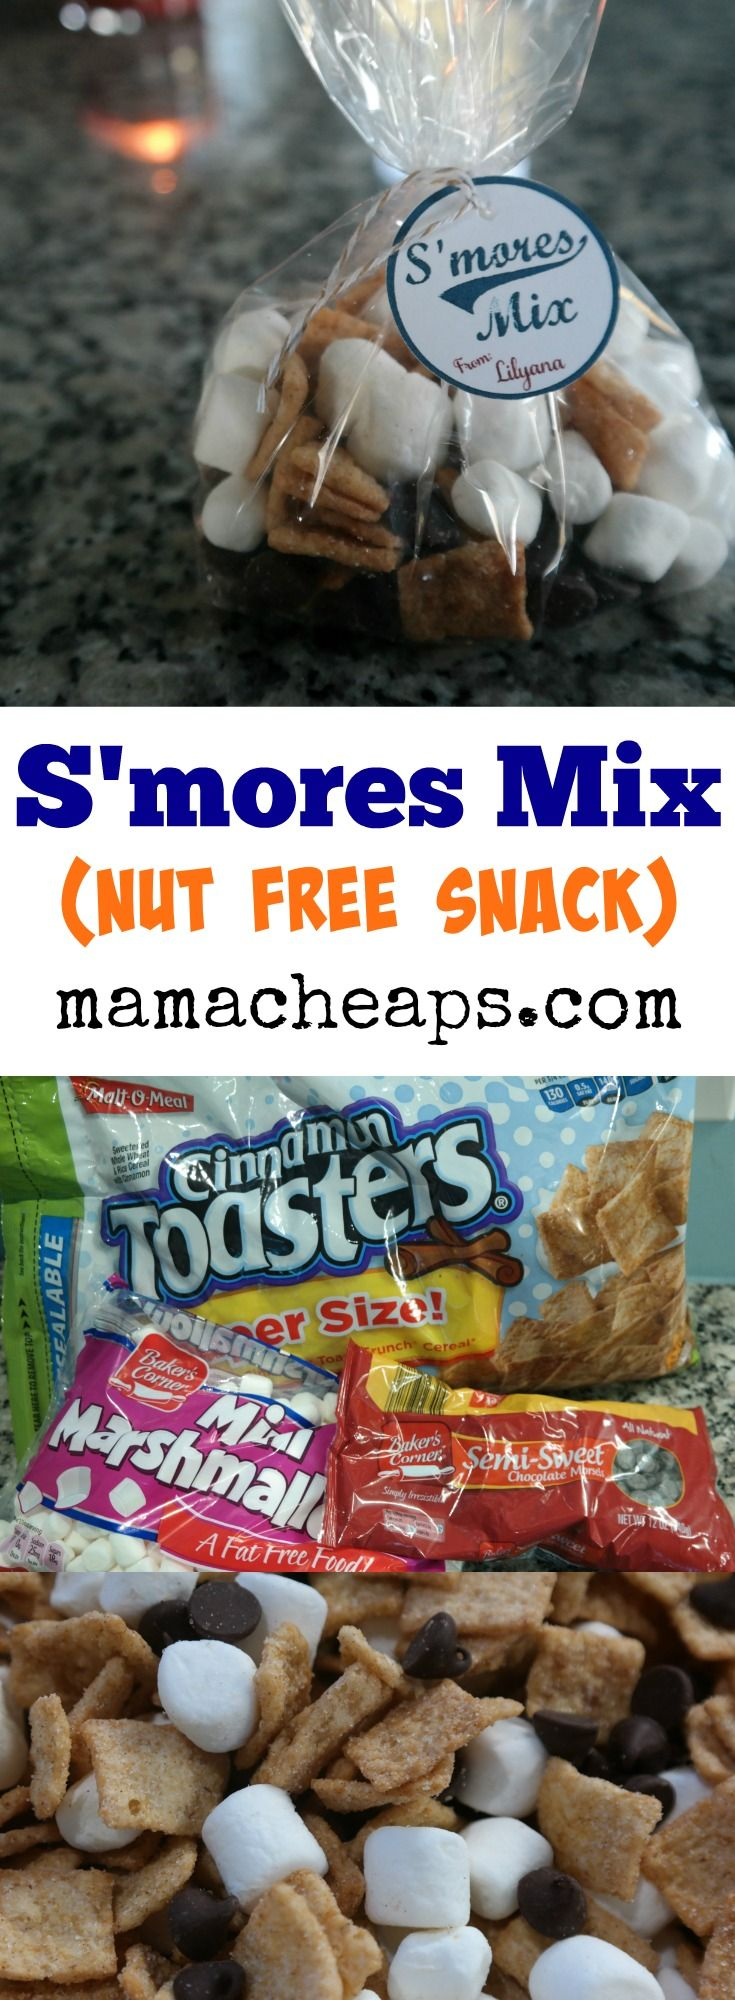 S'mores Trail Mix – Easy Nut Free Snack